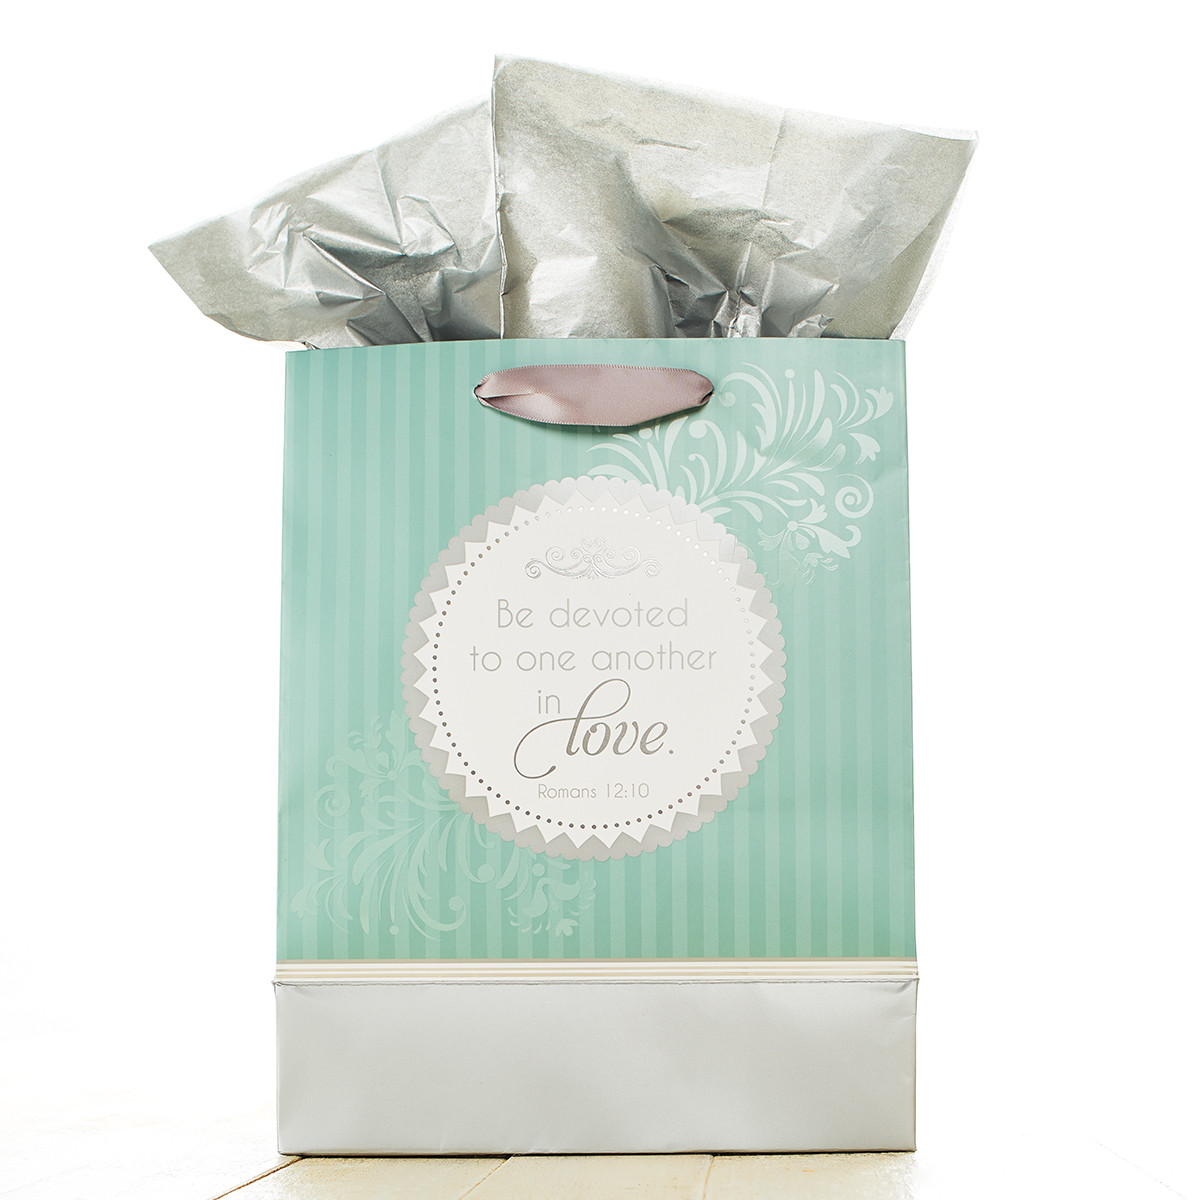 God Bless Your Special Day Medium Gift Bag GBA124, gift bag, medium bag, special occasion bag, stationary, sacramental gift bag, first communion, confirmatin, RCIA, reconciliation